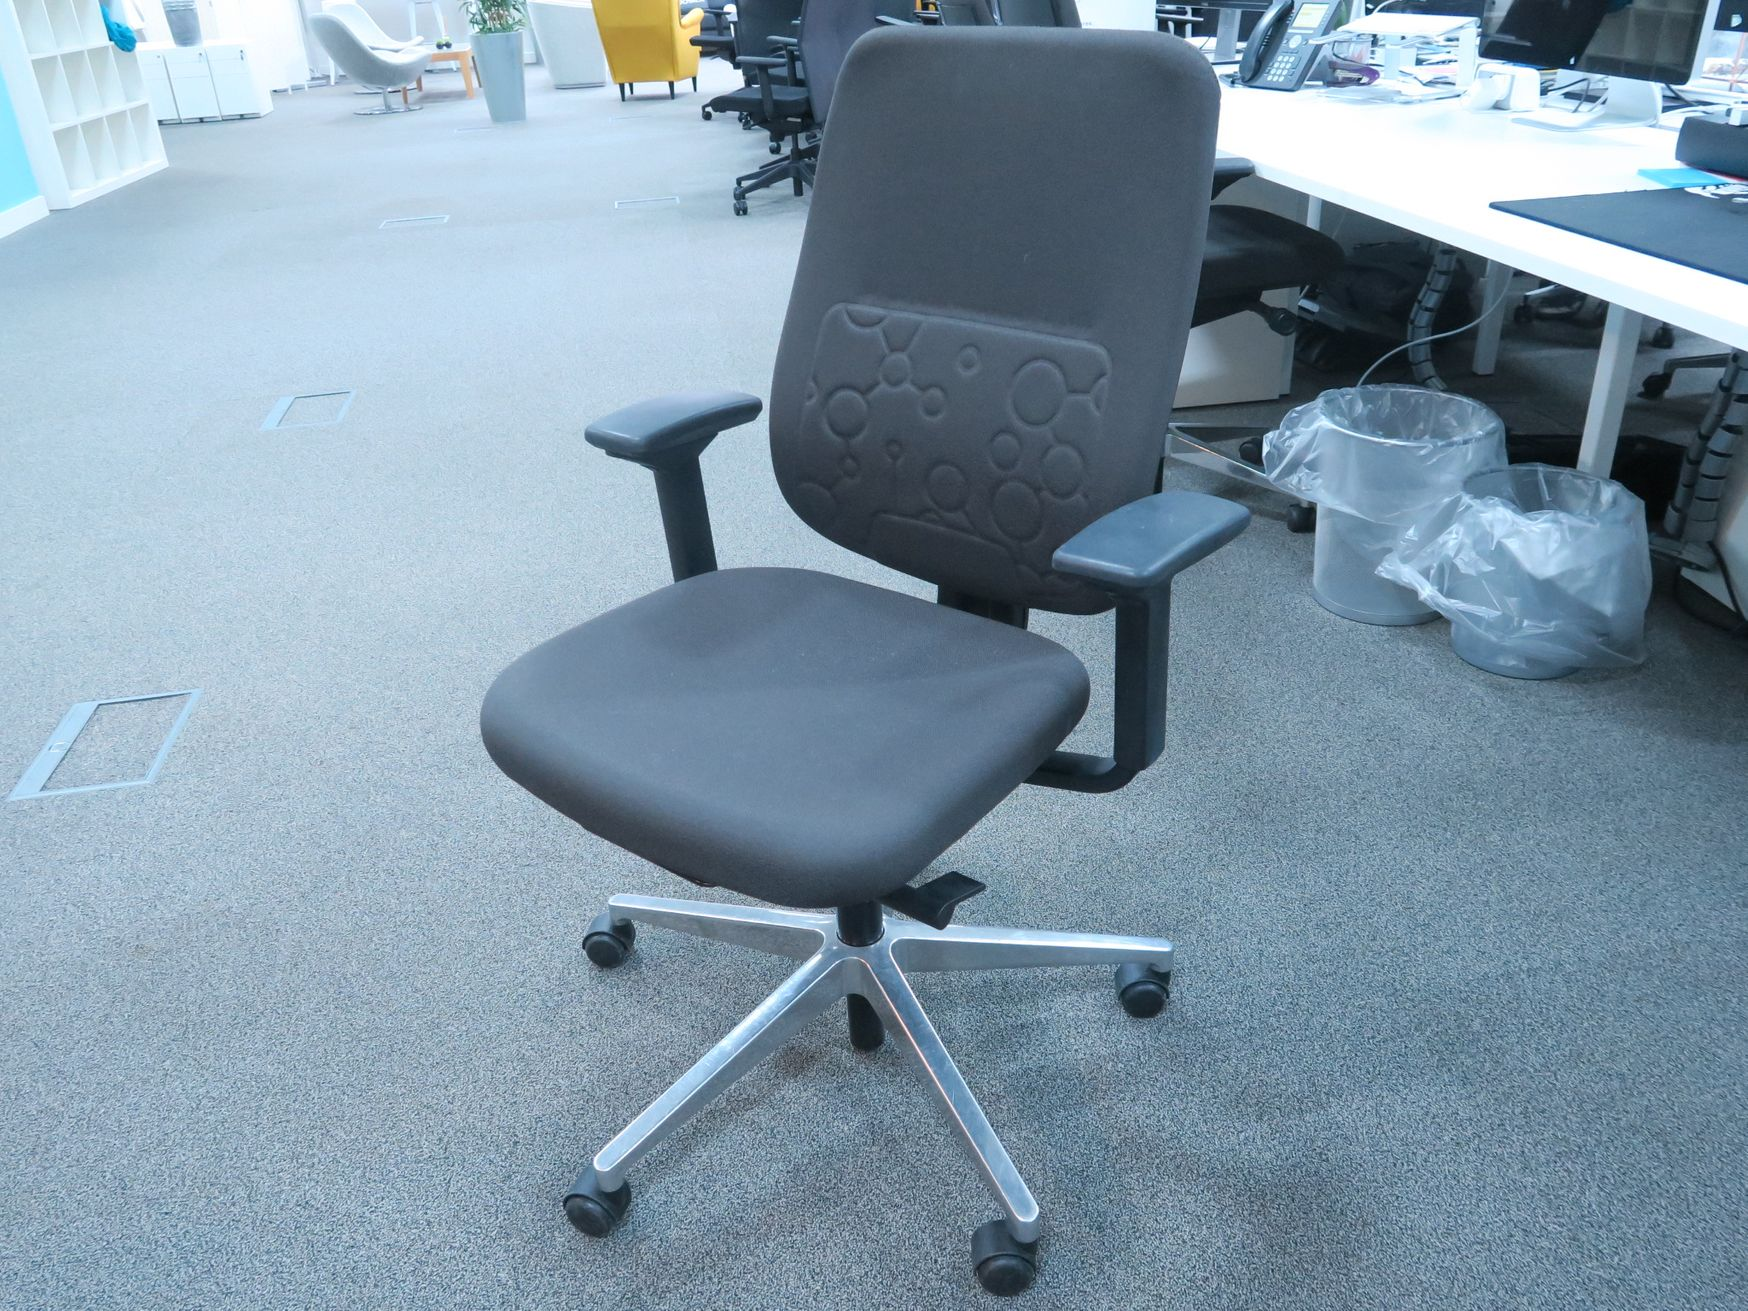 <b>Just Reduced</b> Used Steelcase task chairs with adjustable arms